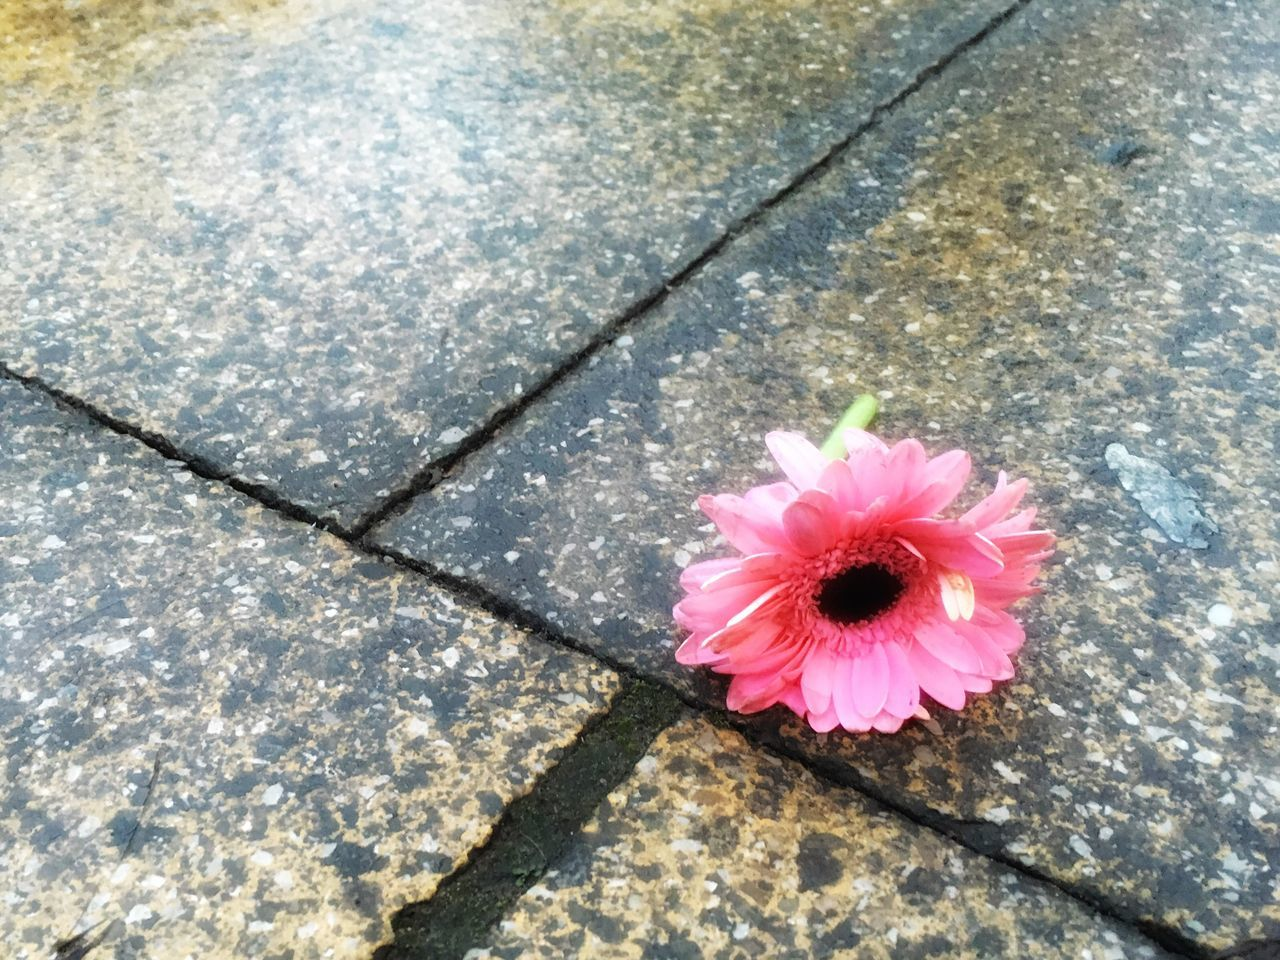 Flower Pink Pavement Sidewalk Wet Concrete Lost Discarded Lost Love Unrequited Love Rain Alone Discarded